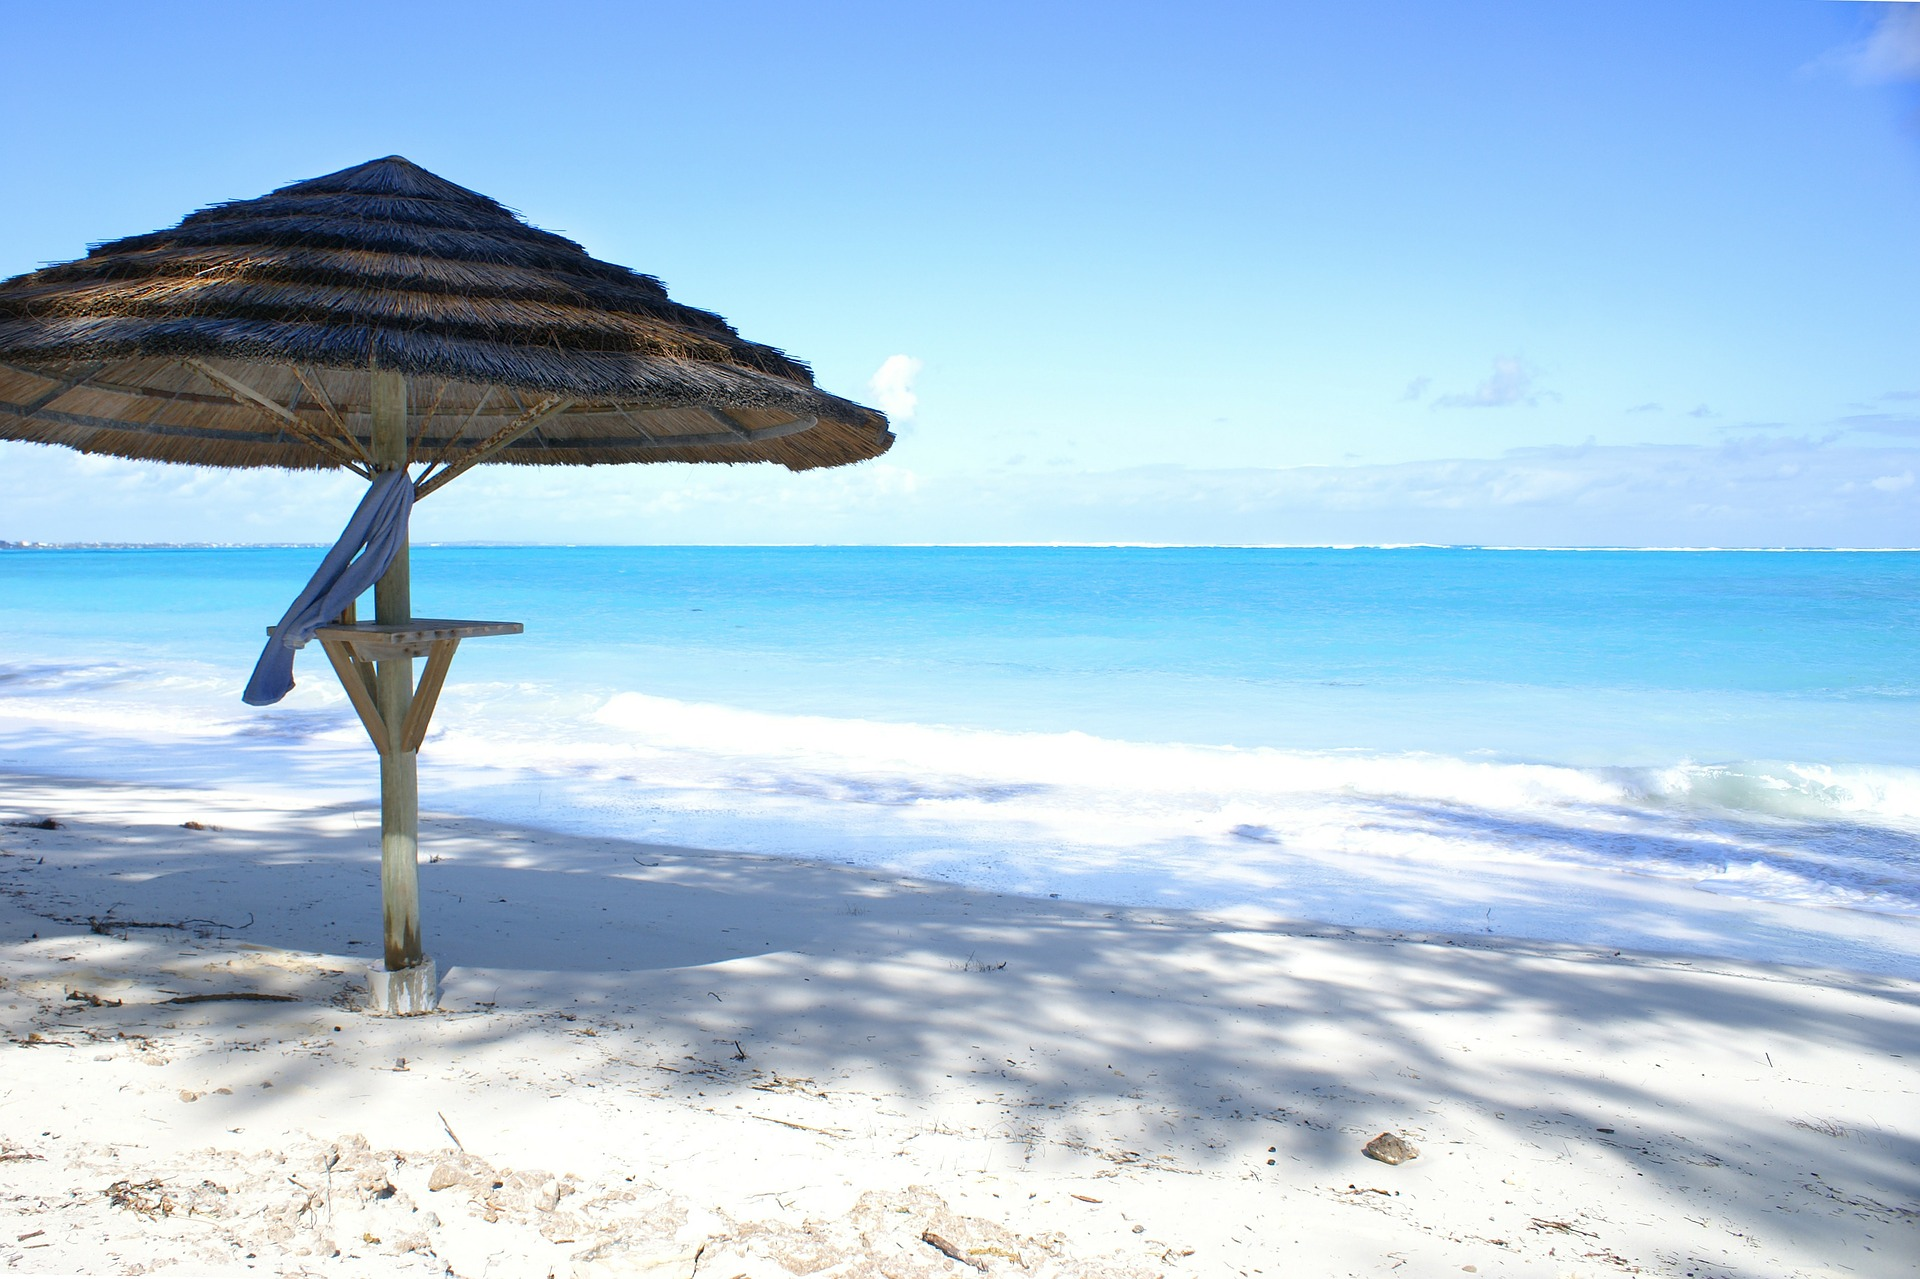 Quick Travel Tips for Visiting Turks & Caicos Caribbean Islands